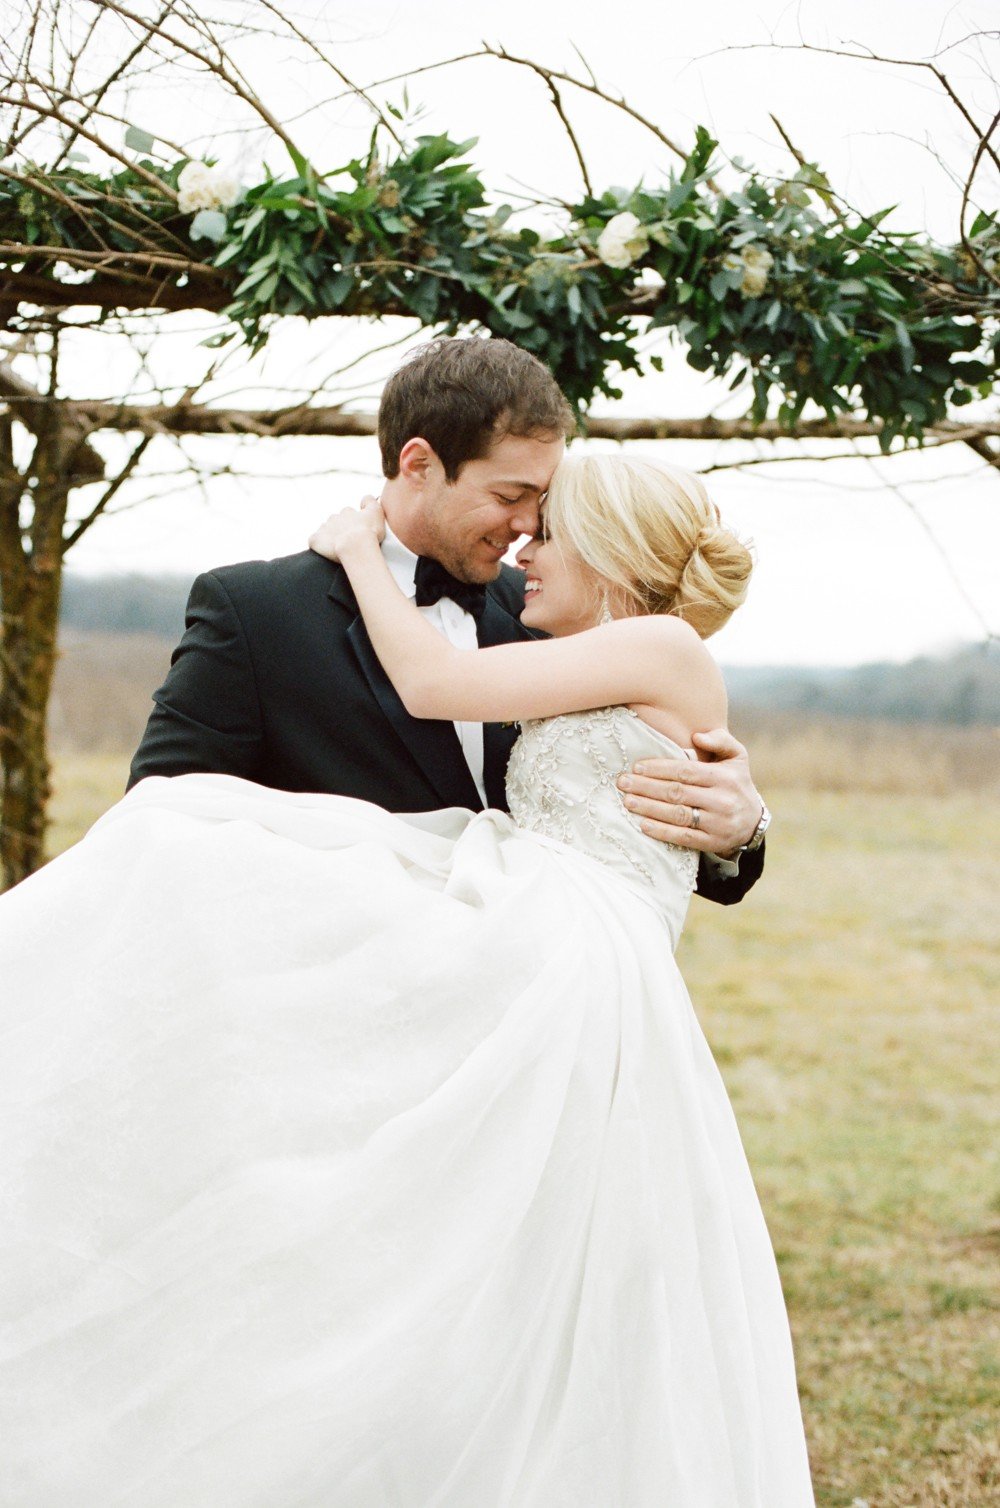 tennessee-wedding-28-08062015-ky